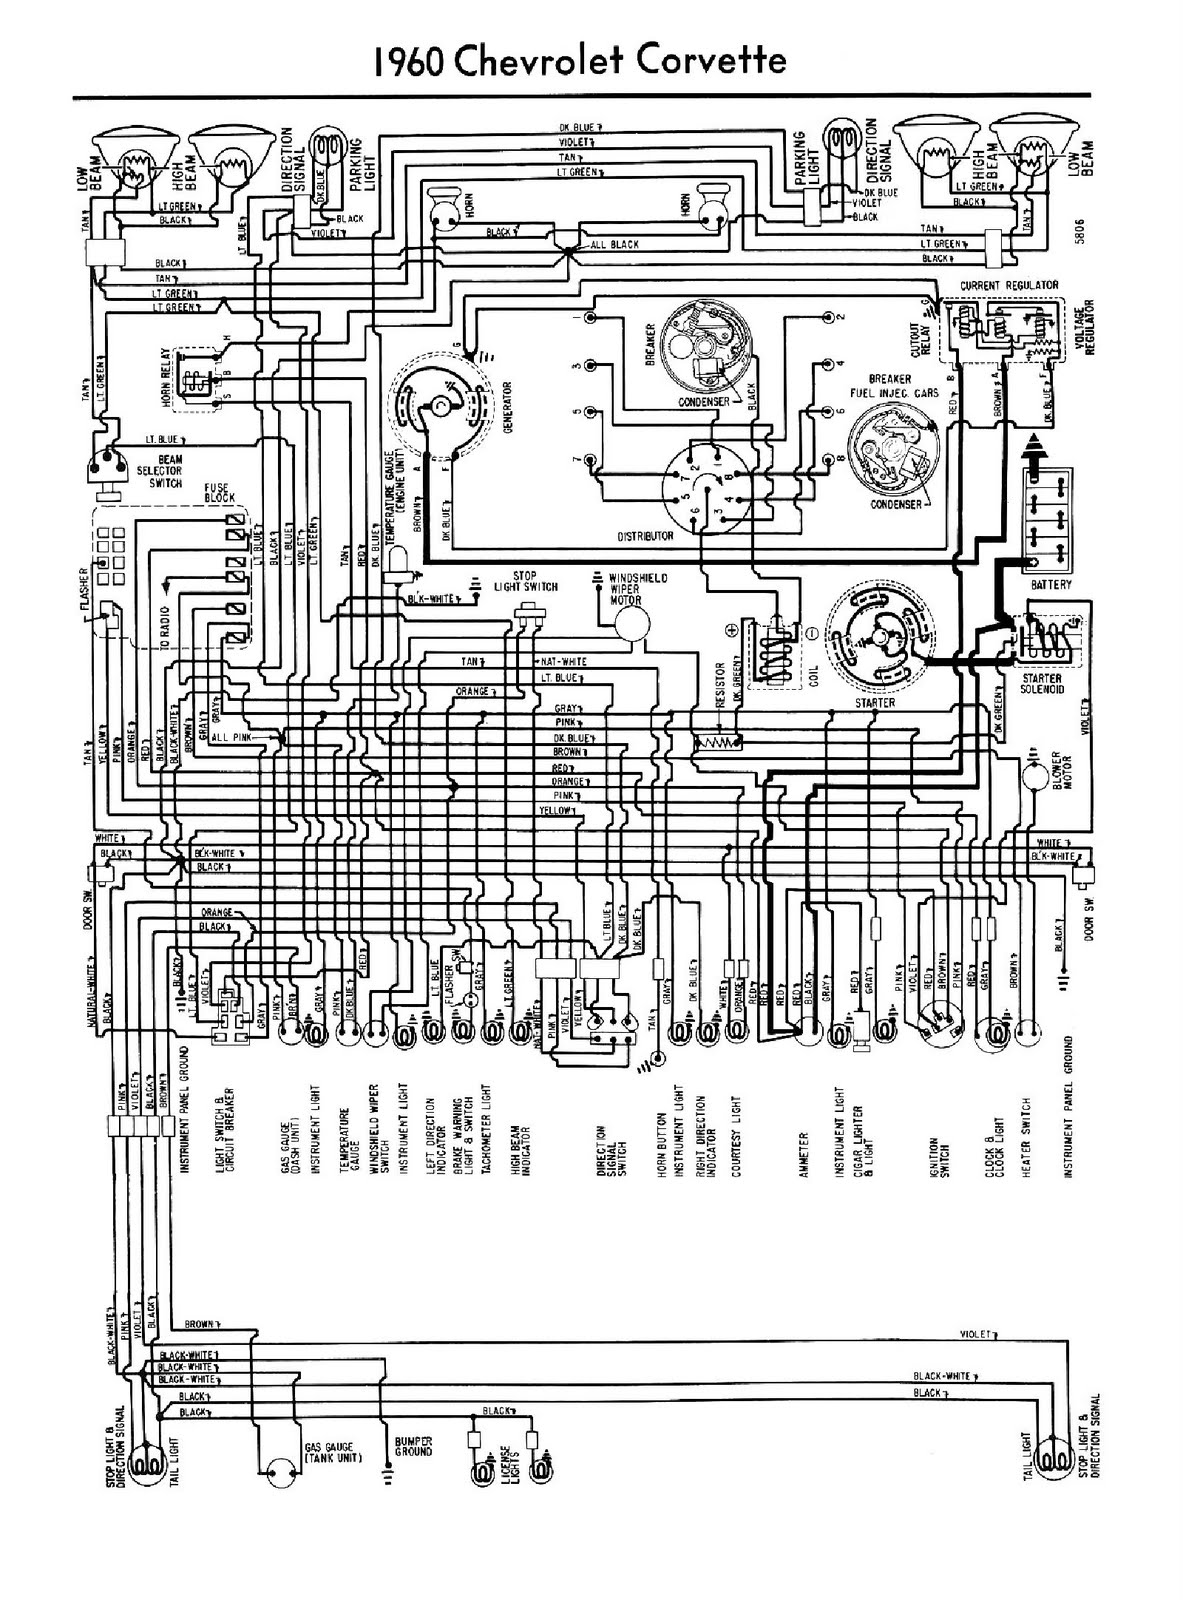 1960_Chevrolet_Corvette_Wiring corvette wiring diagram evo x wiring diagram \u2022 wiring diagram  at readyjetset.co